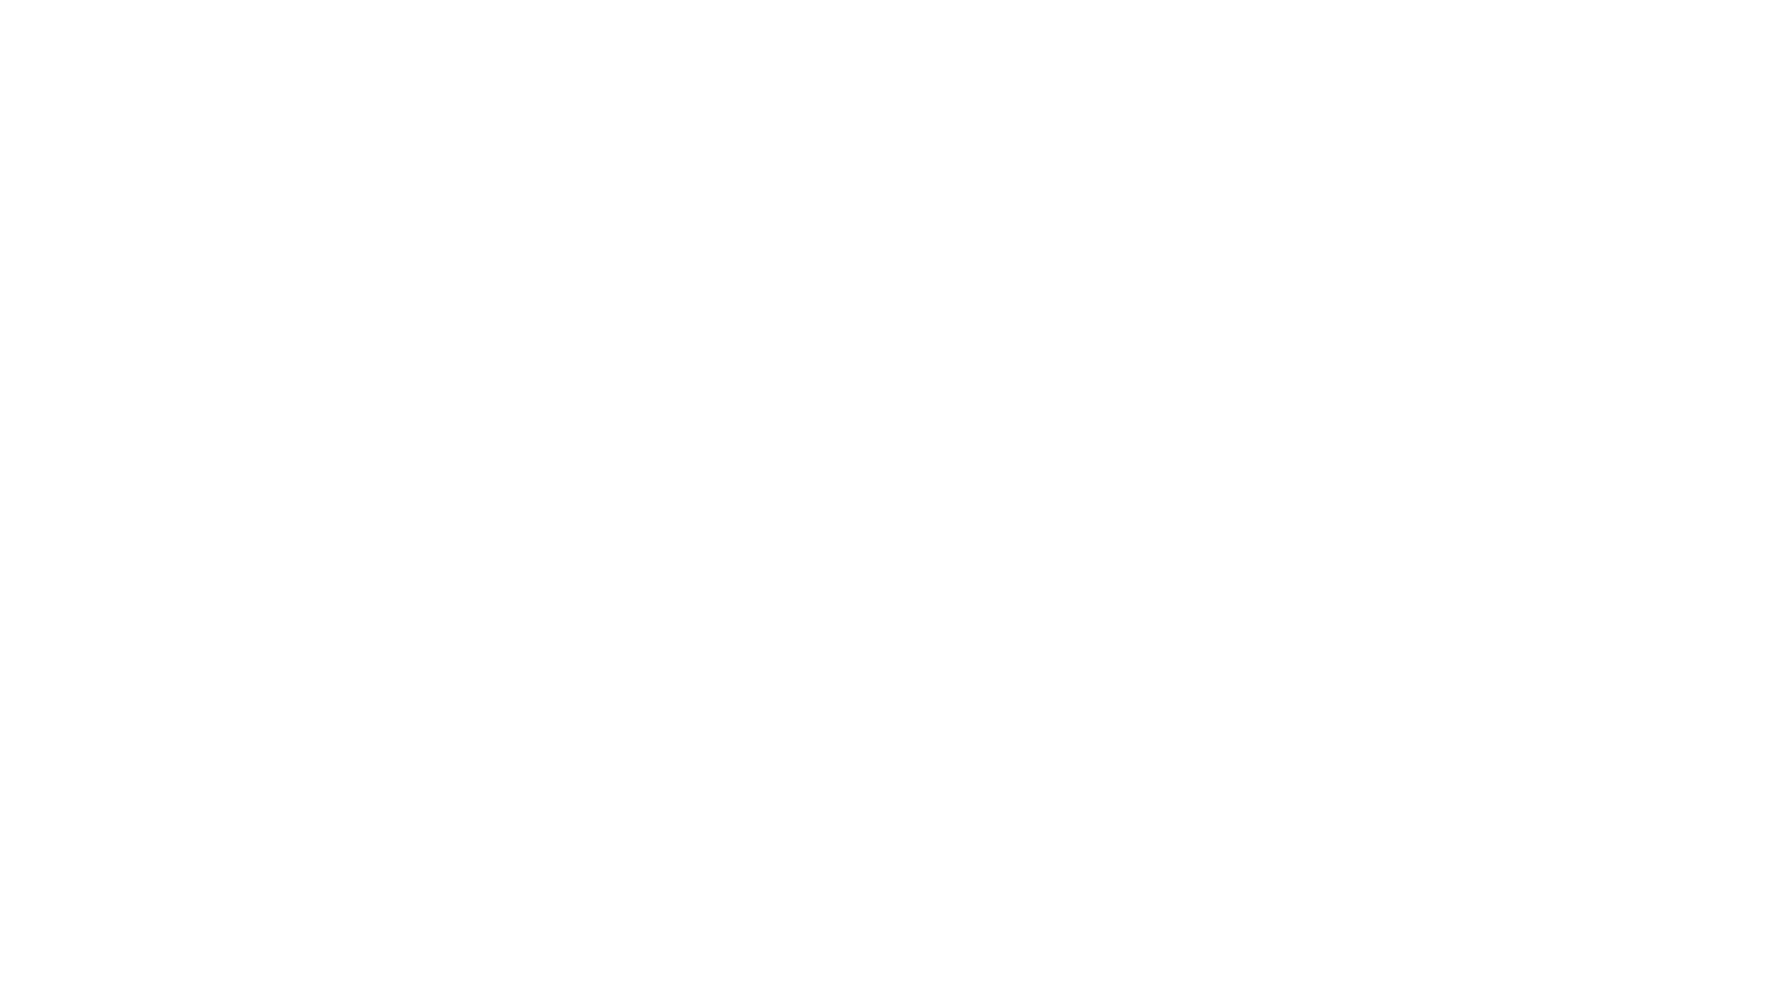 Earl and Fairy